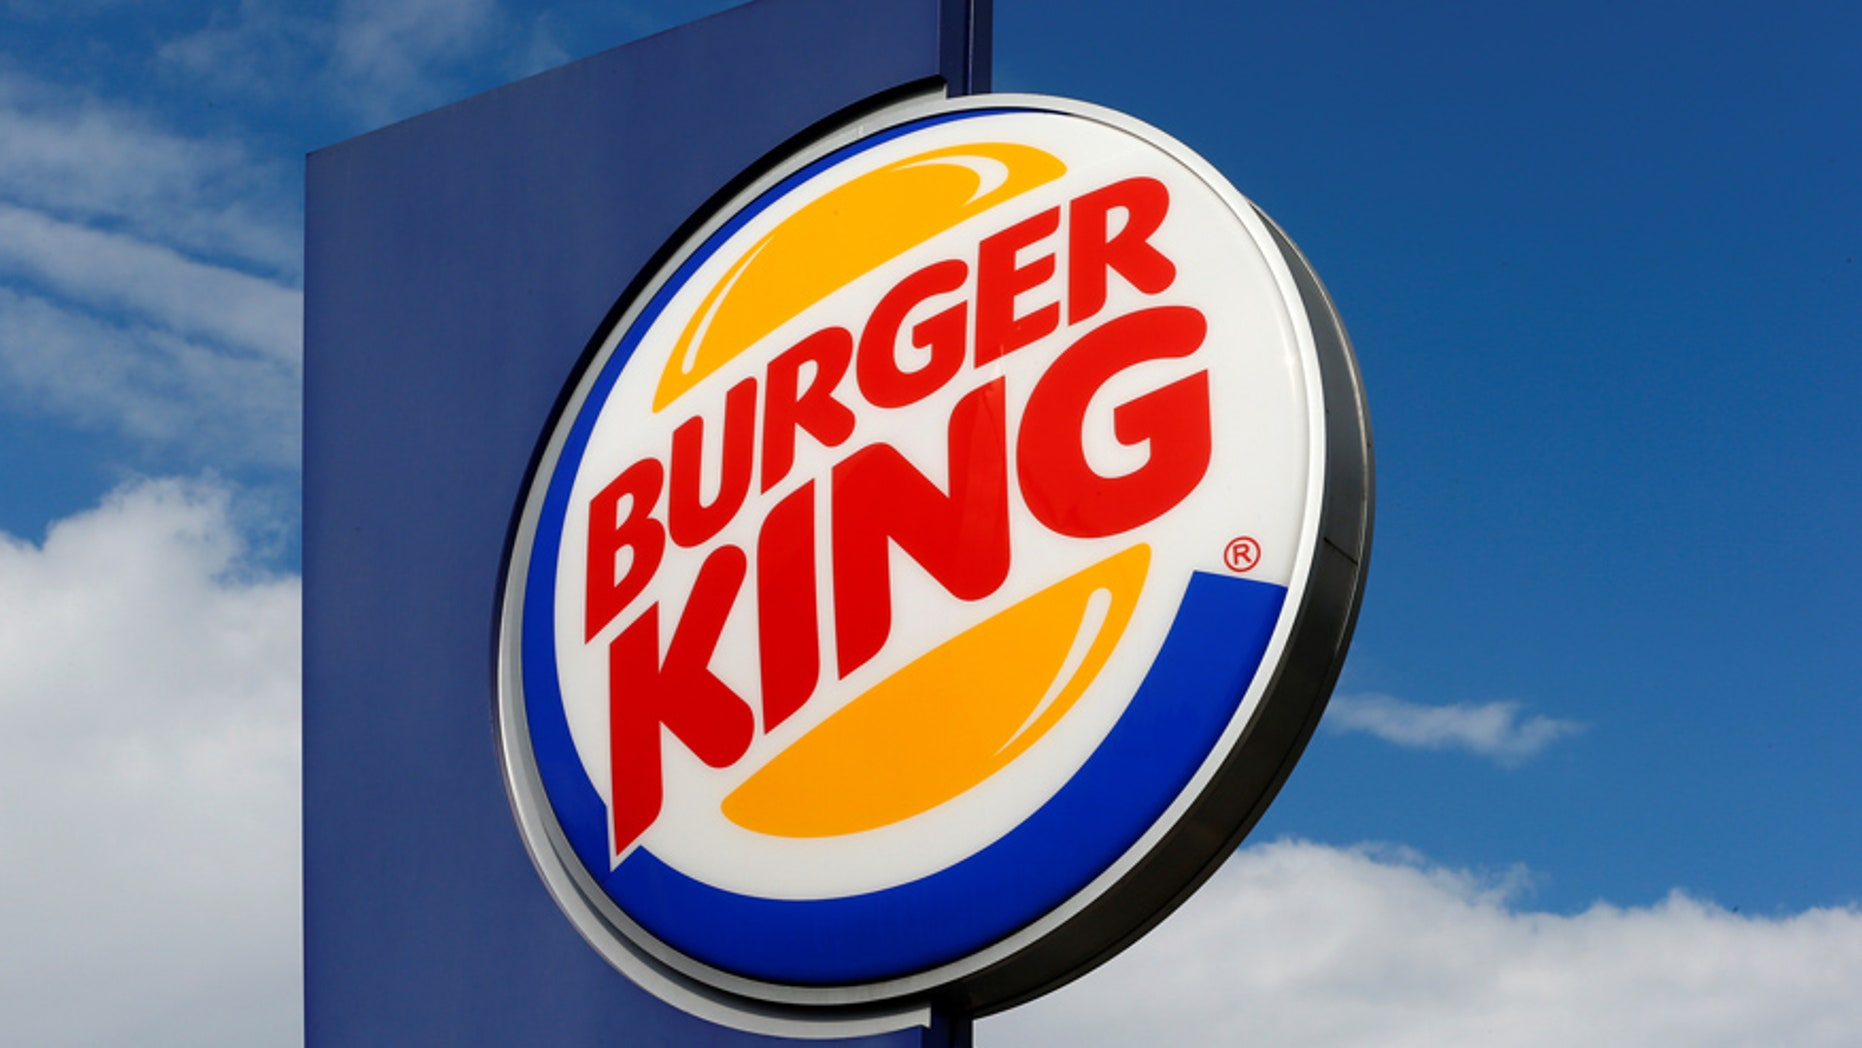 The logo of U.S. fast food group Burger King is seen at a restaurant in Bruettisellen, Switzerland October 11, 2016.  REUTERS/Arnd Wiegmann  - RTX2R68P